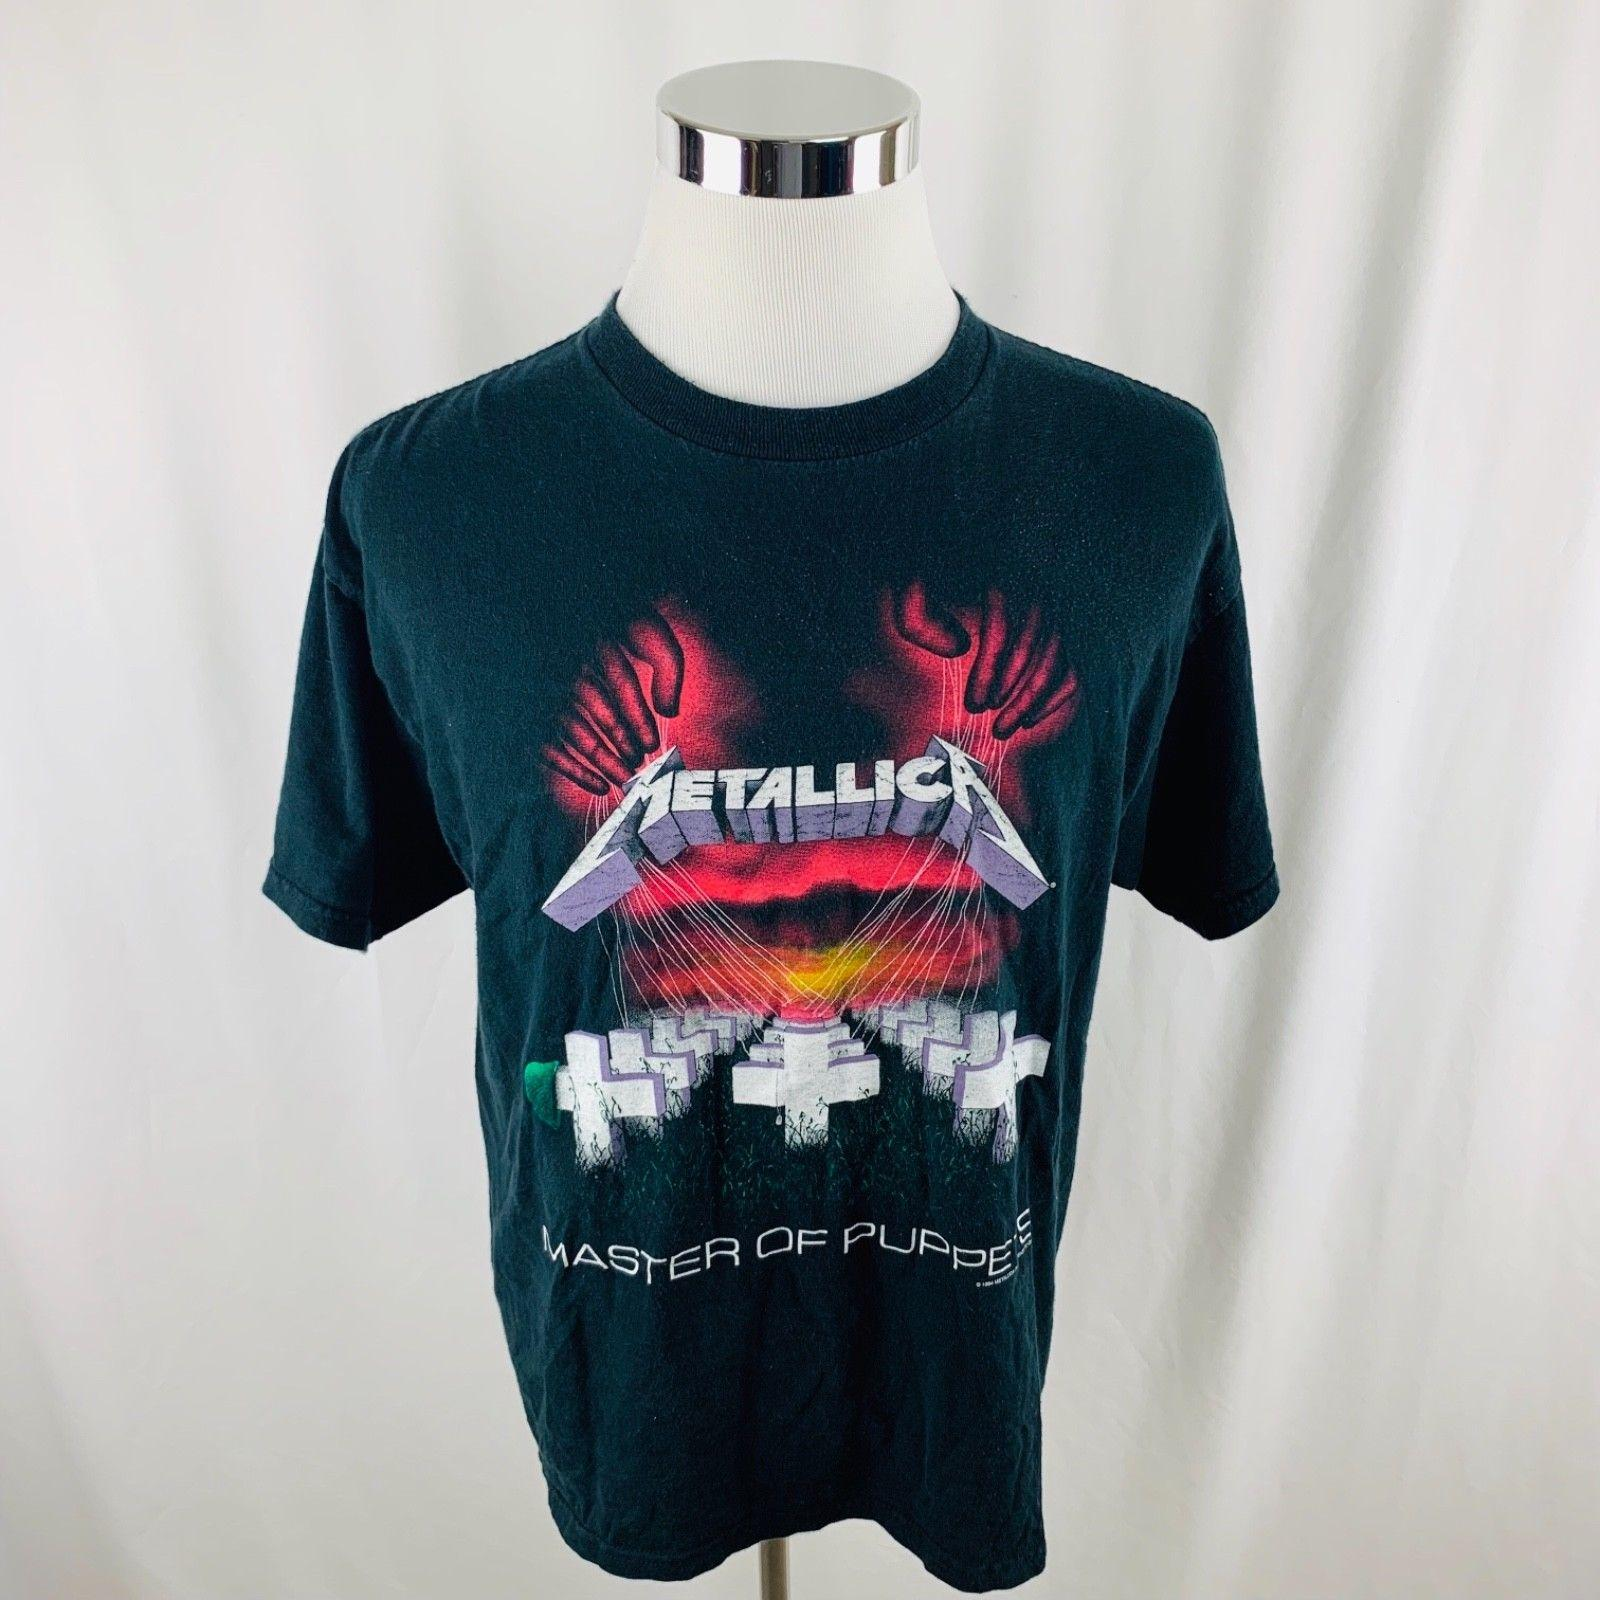 Vintage 90s 1994 Metallica Master Of Puppets Tour Band Tee T Shirt